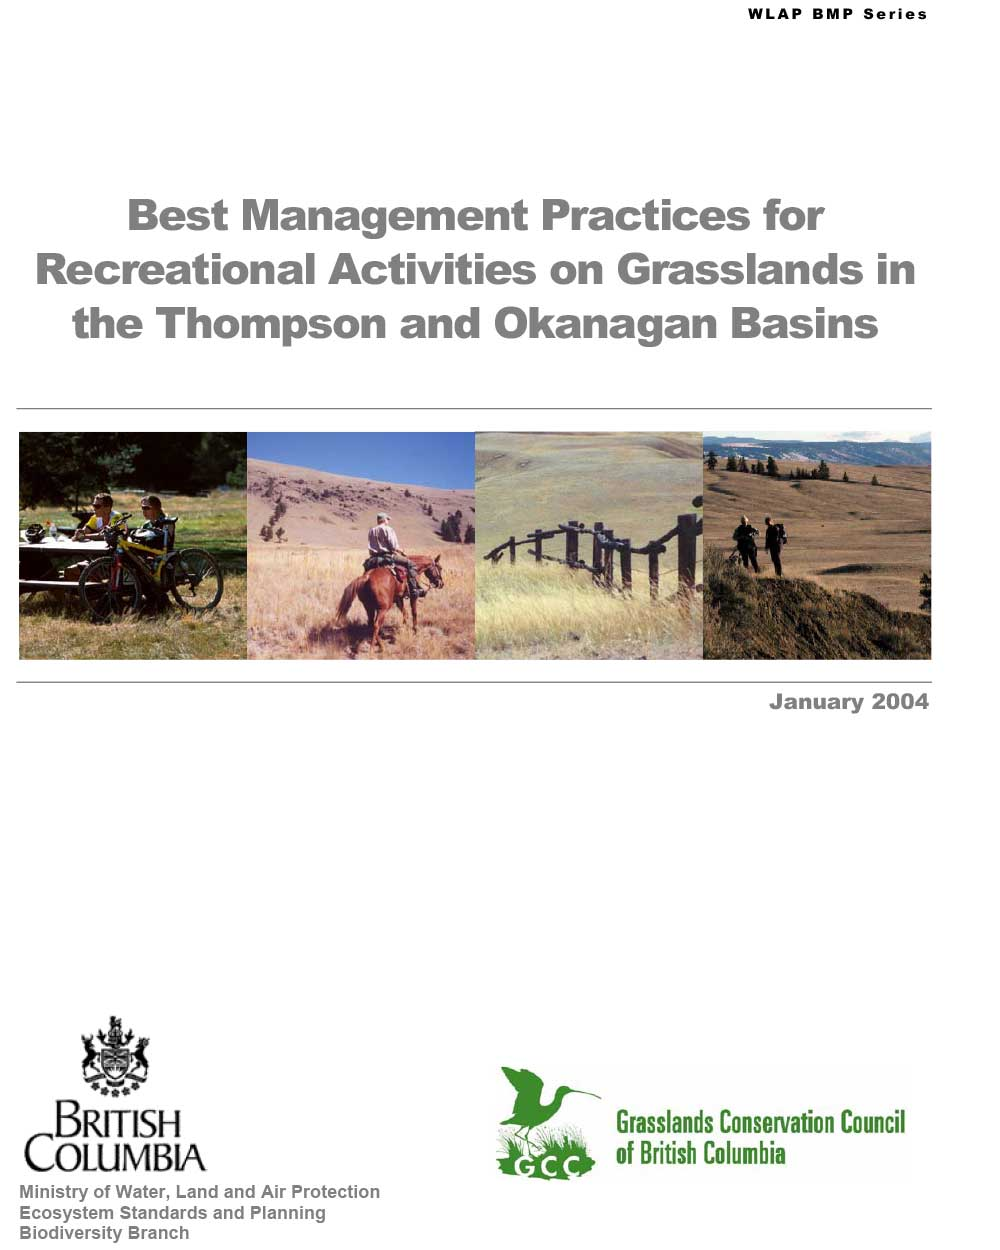 BC Grasslands - Best Management Practices for Motorized Recreation - Thompson & Okanagan Basins